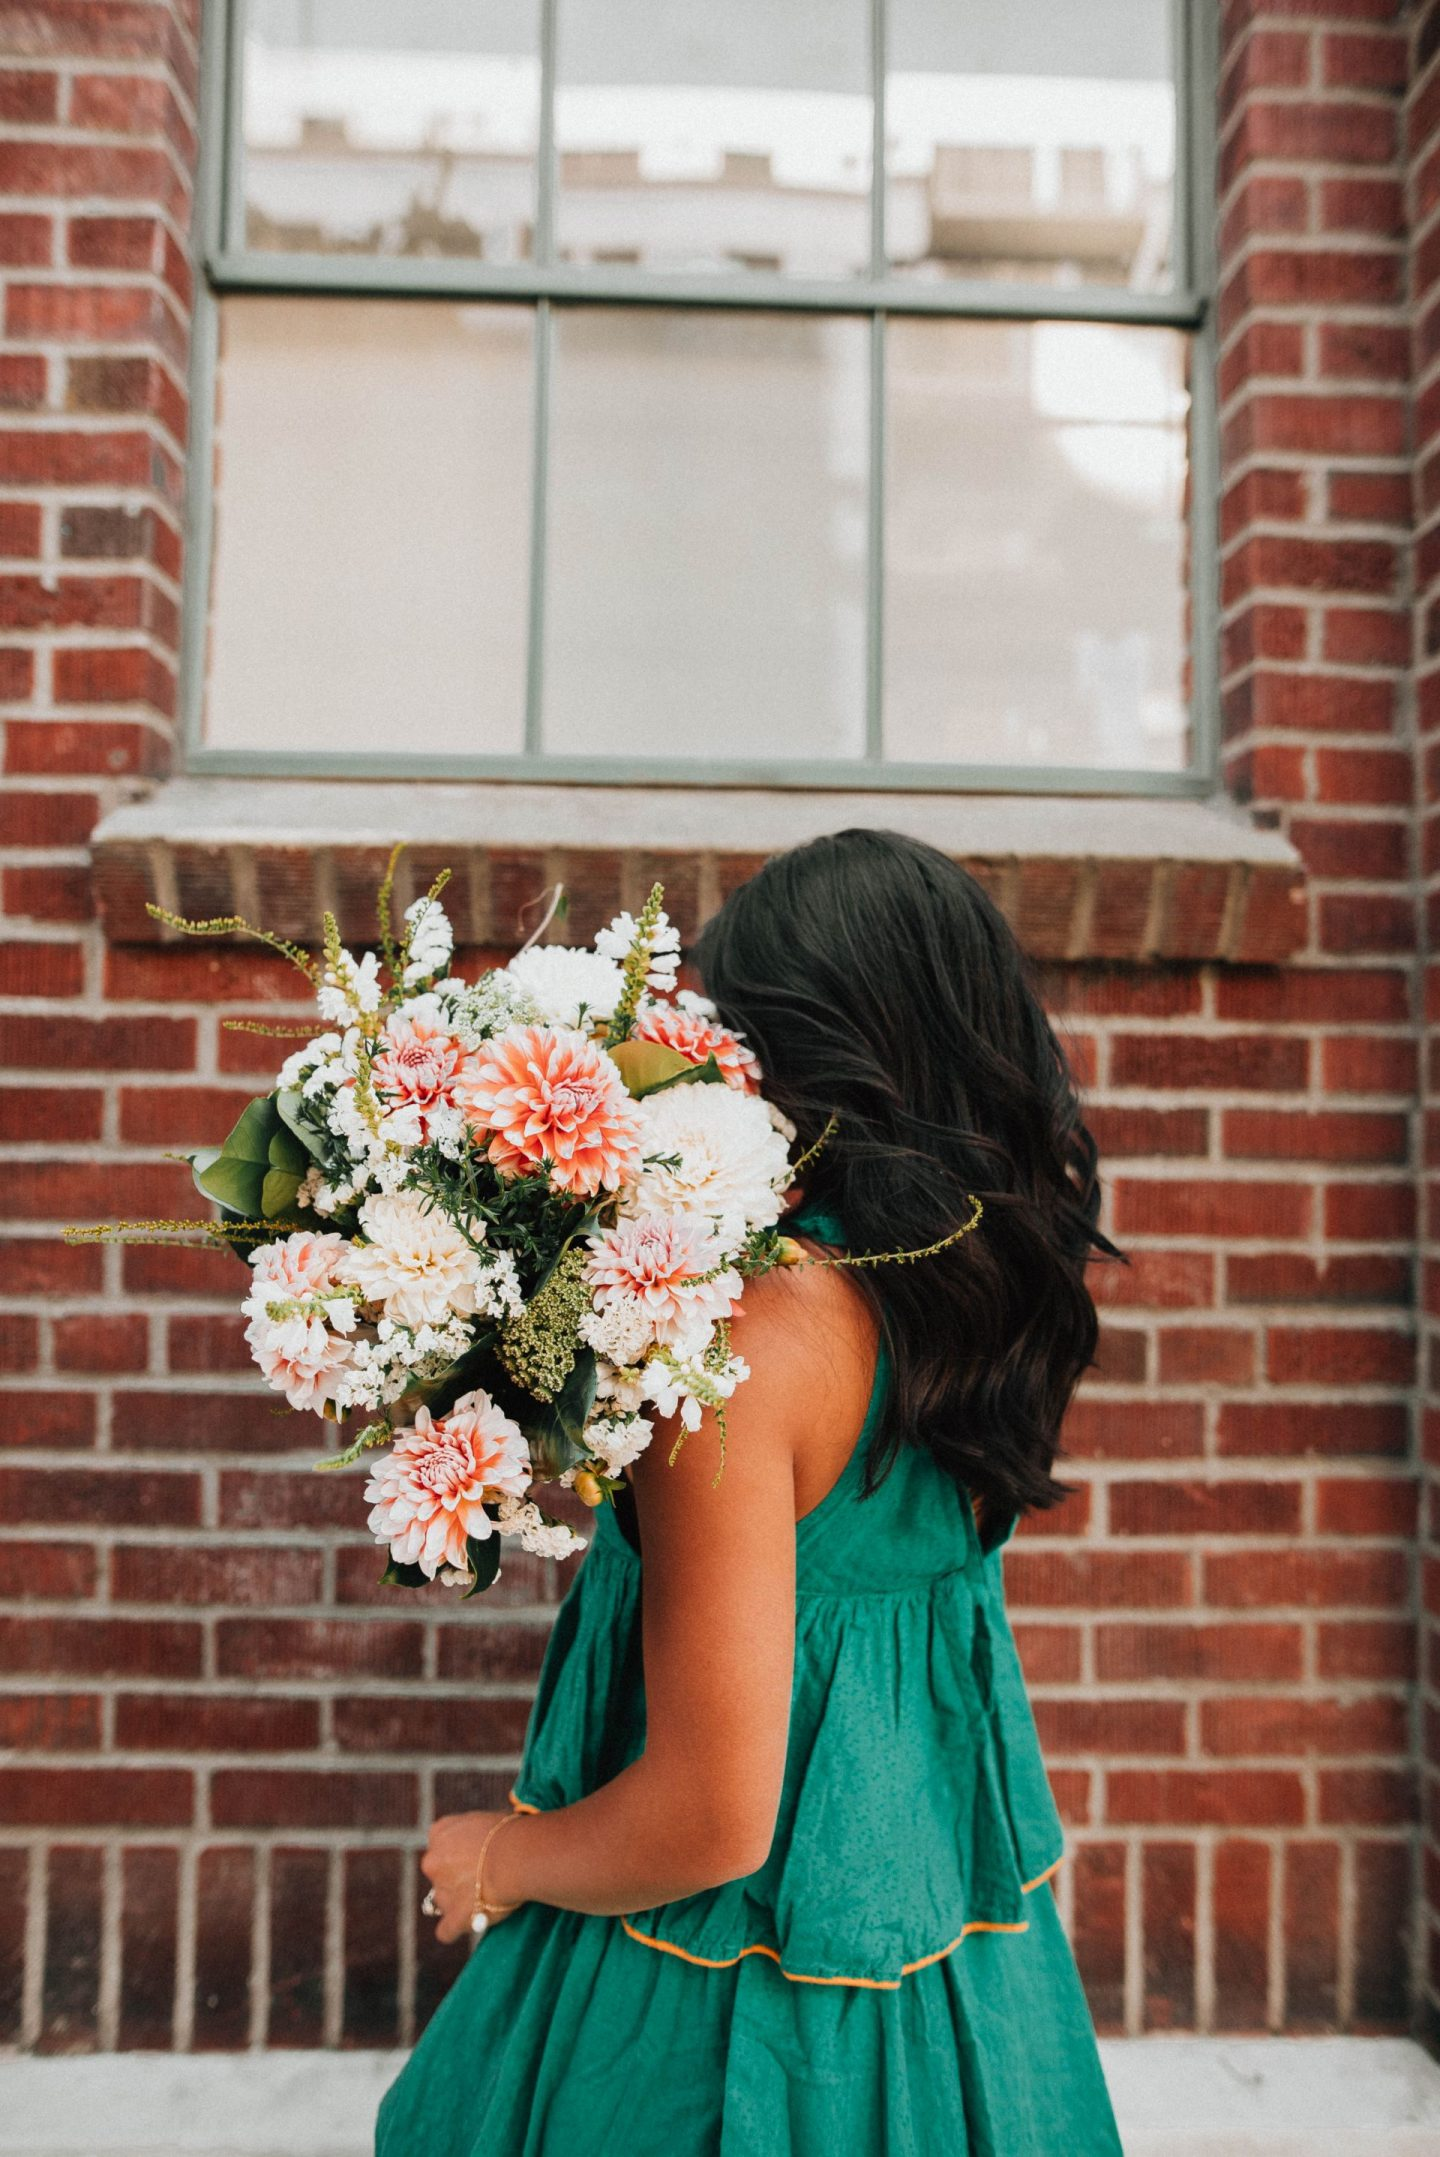 Pose with a flowers - How to pose with a bouquet of flowers